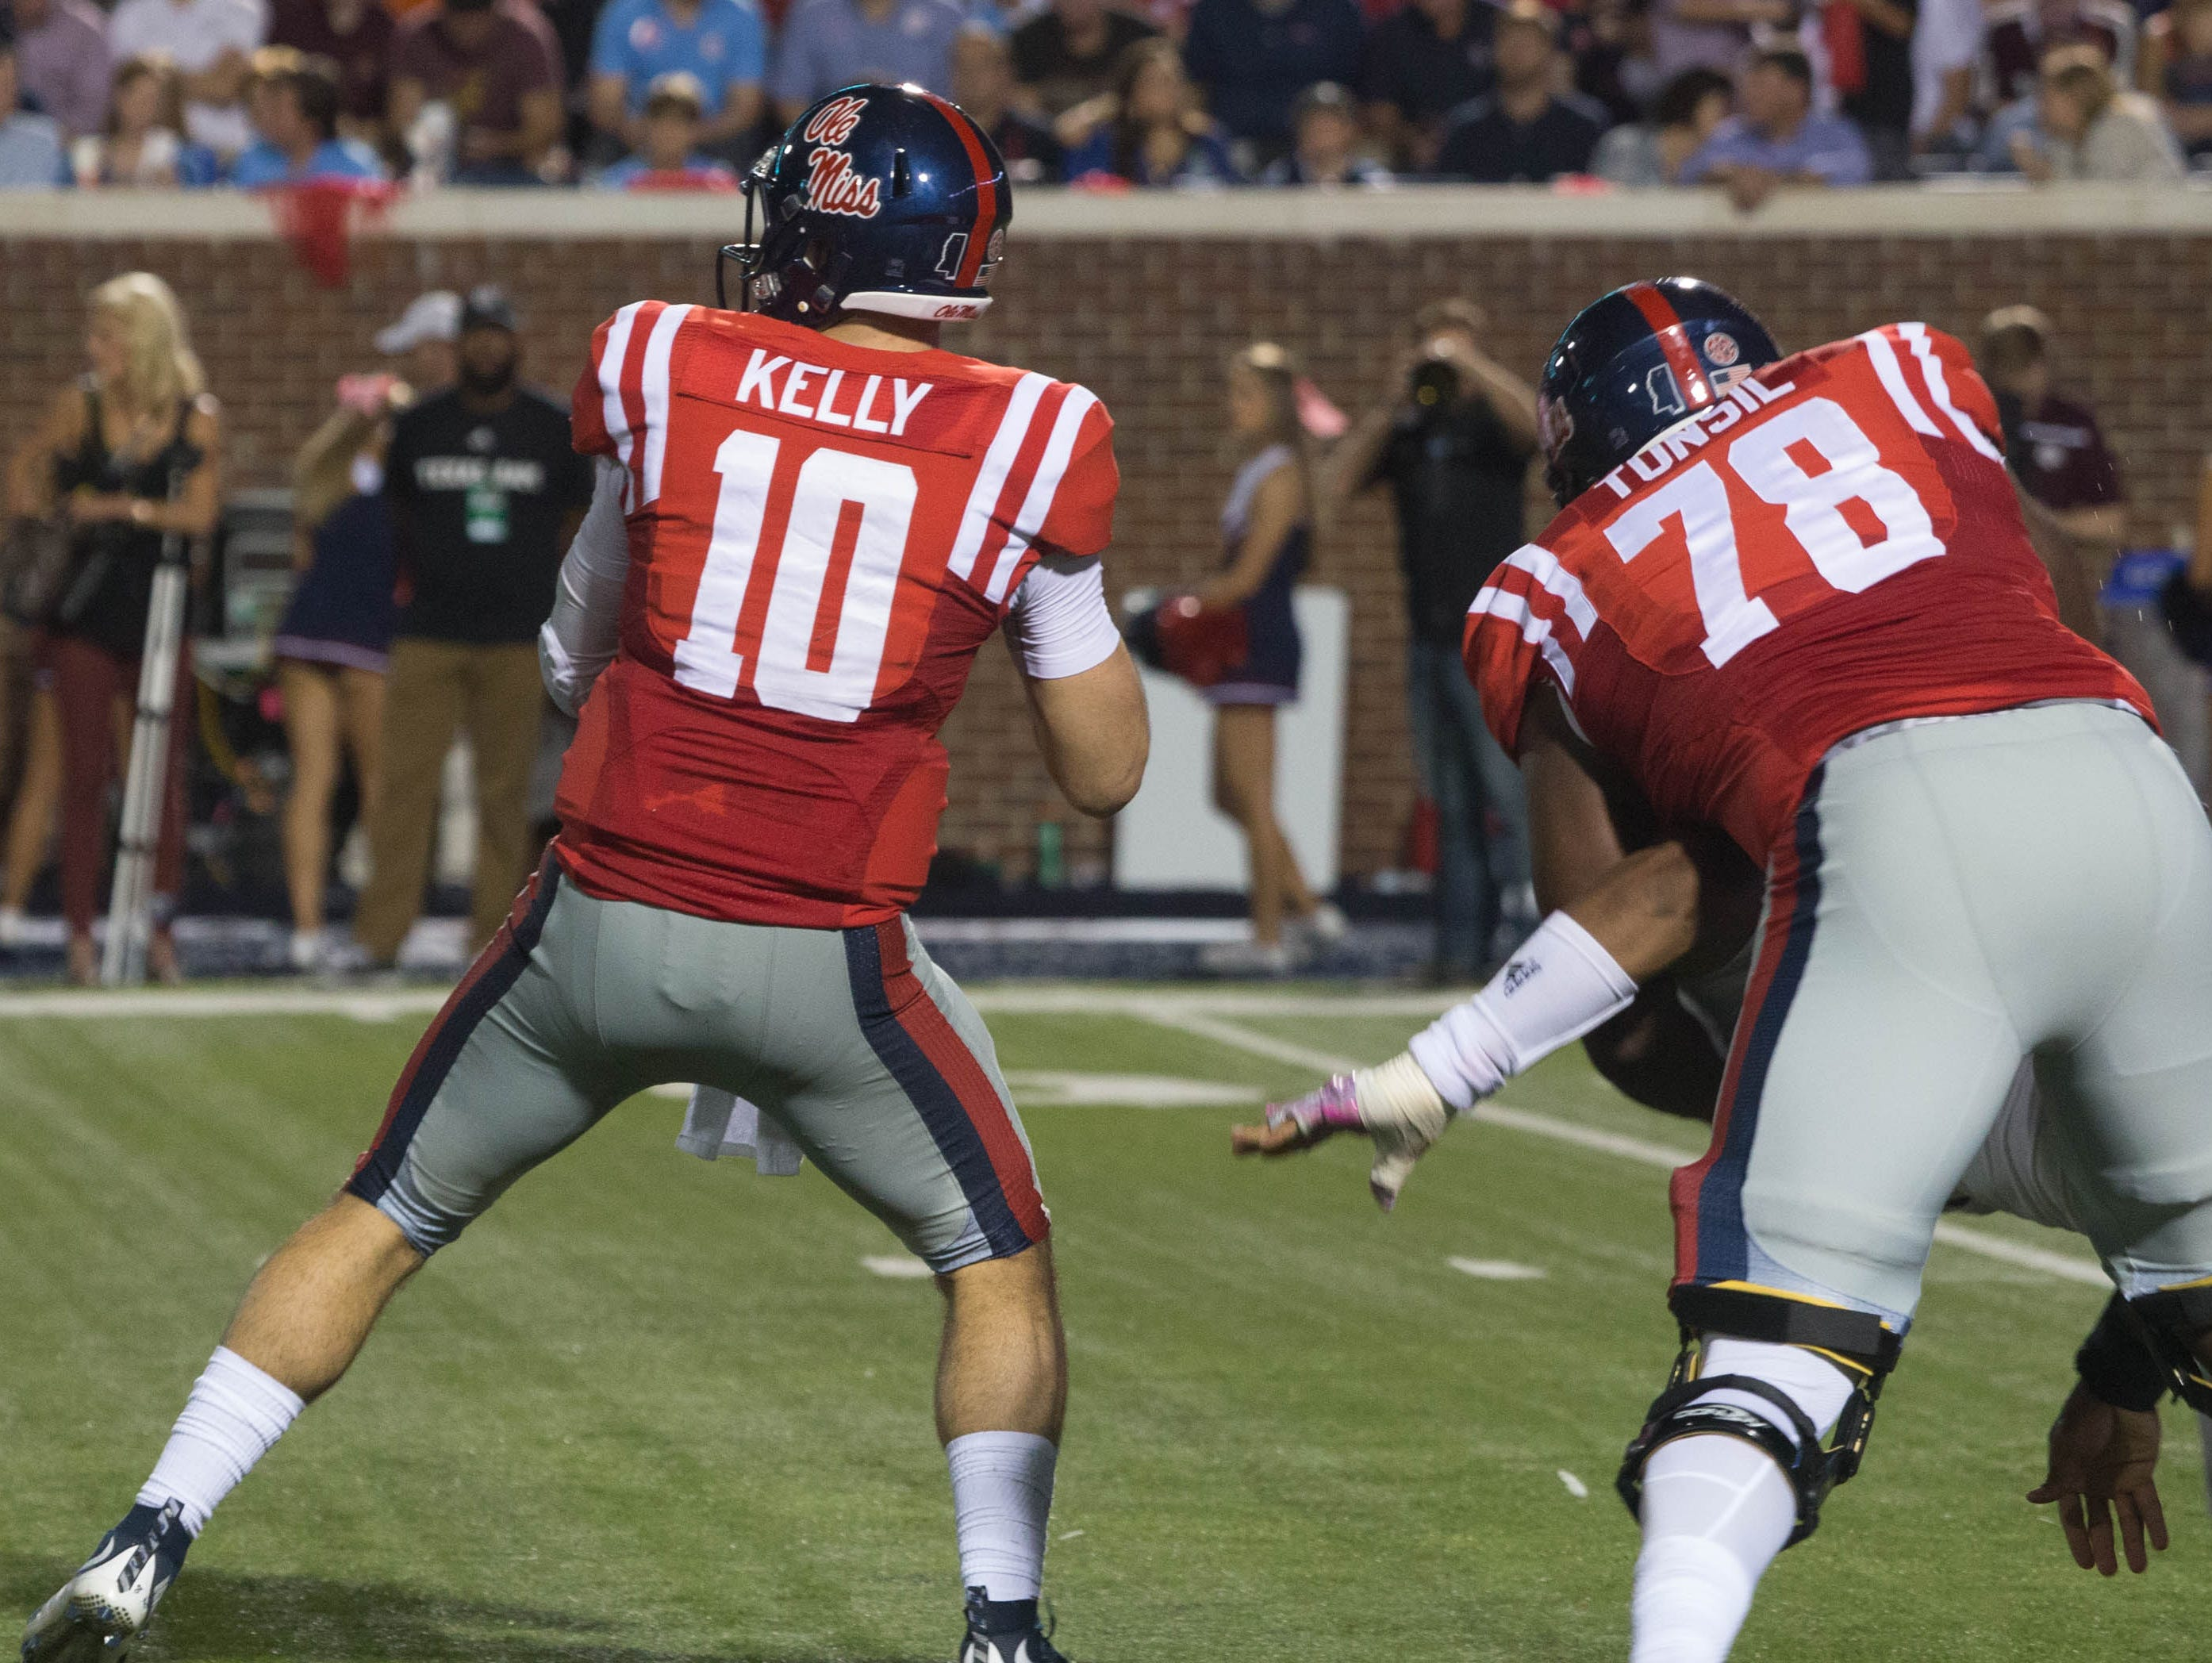 Ole Miss' Laremy Tunsil tackles Myles Garrett allowing Chad Kelly to throw the pass.